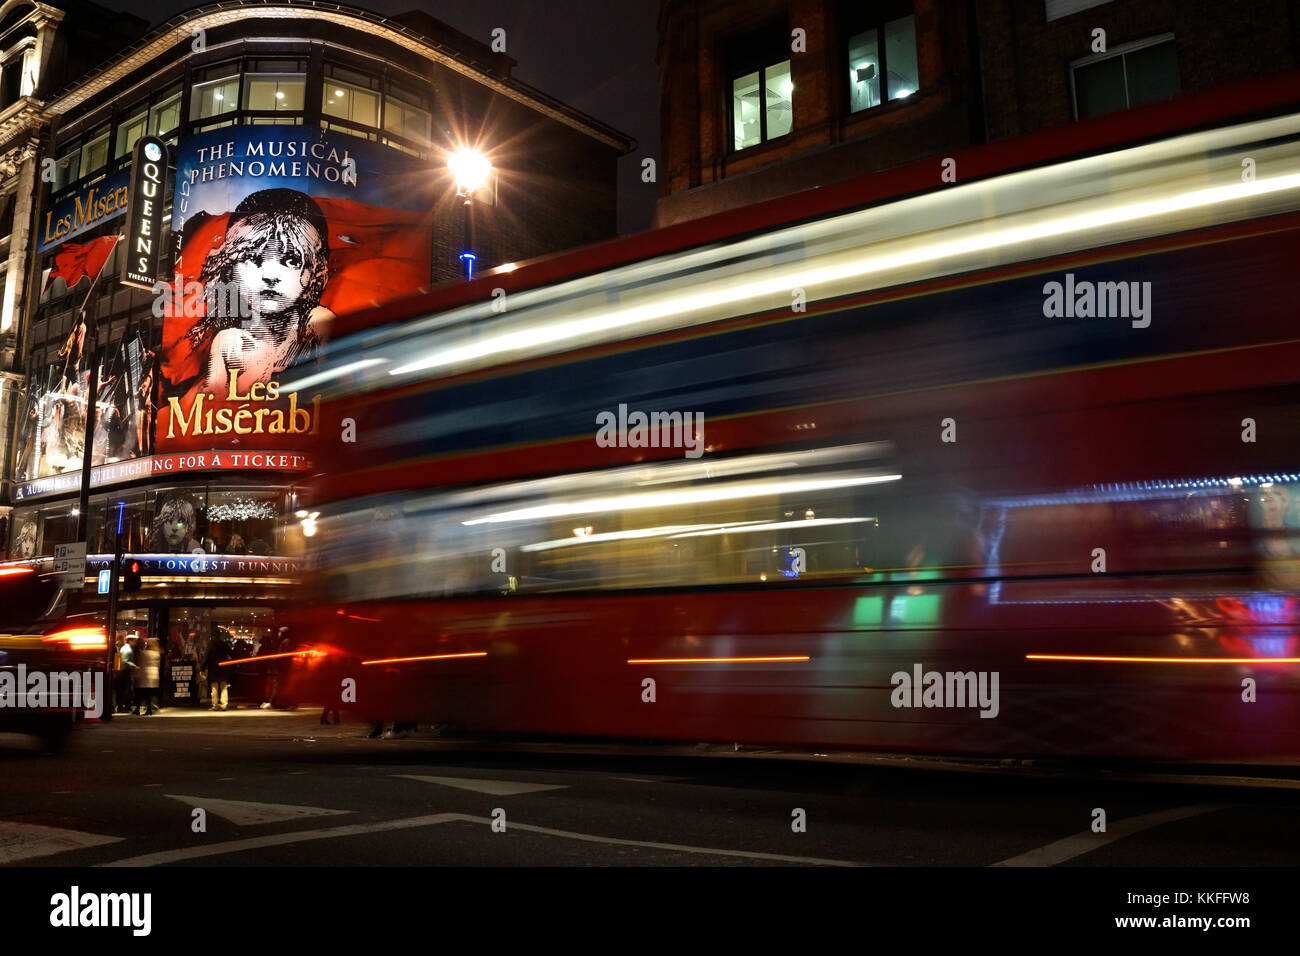 Les Miserables at the Queen's Theatre in London's West End (Shaftesbury Avenue) - Stock Image